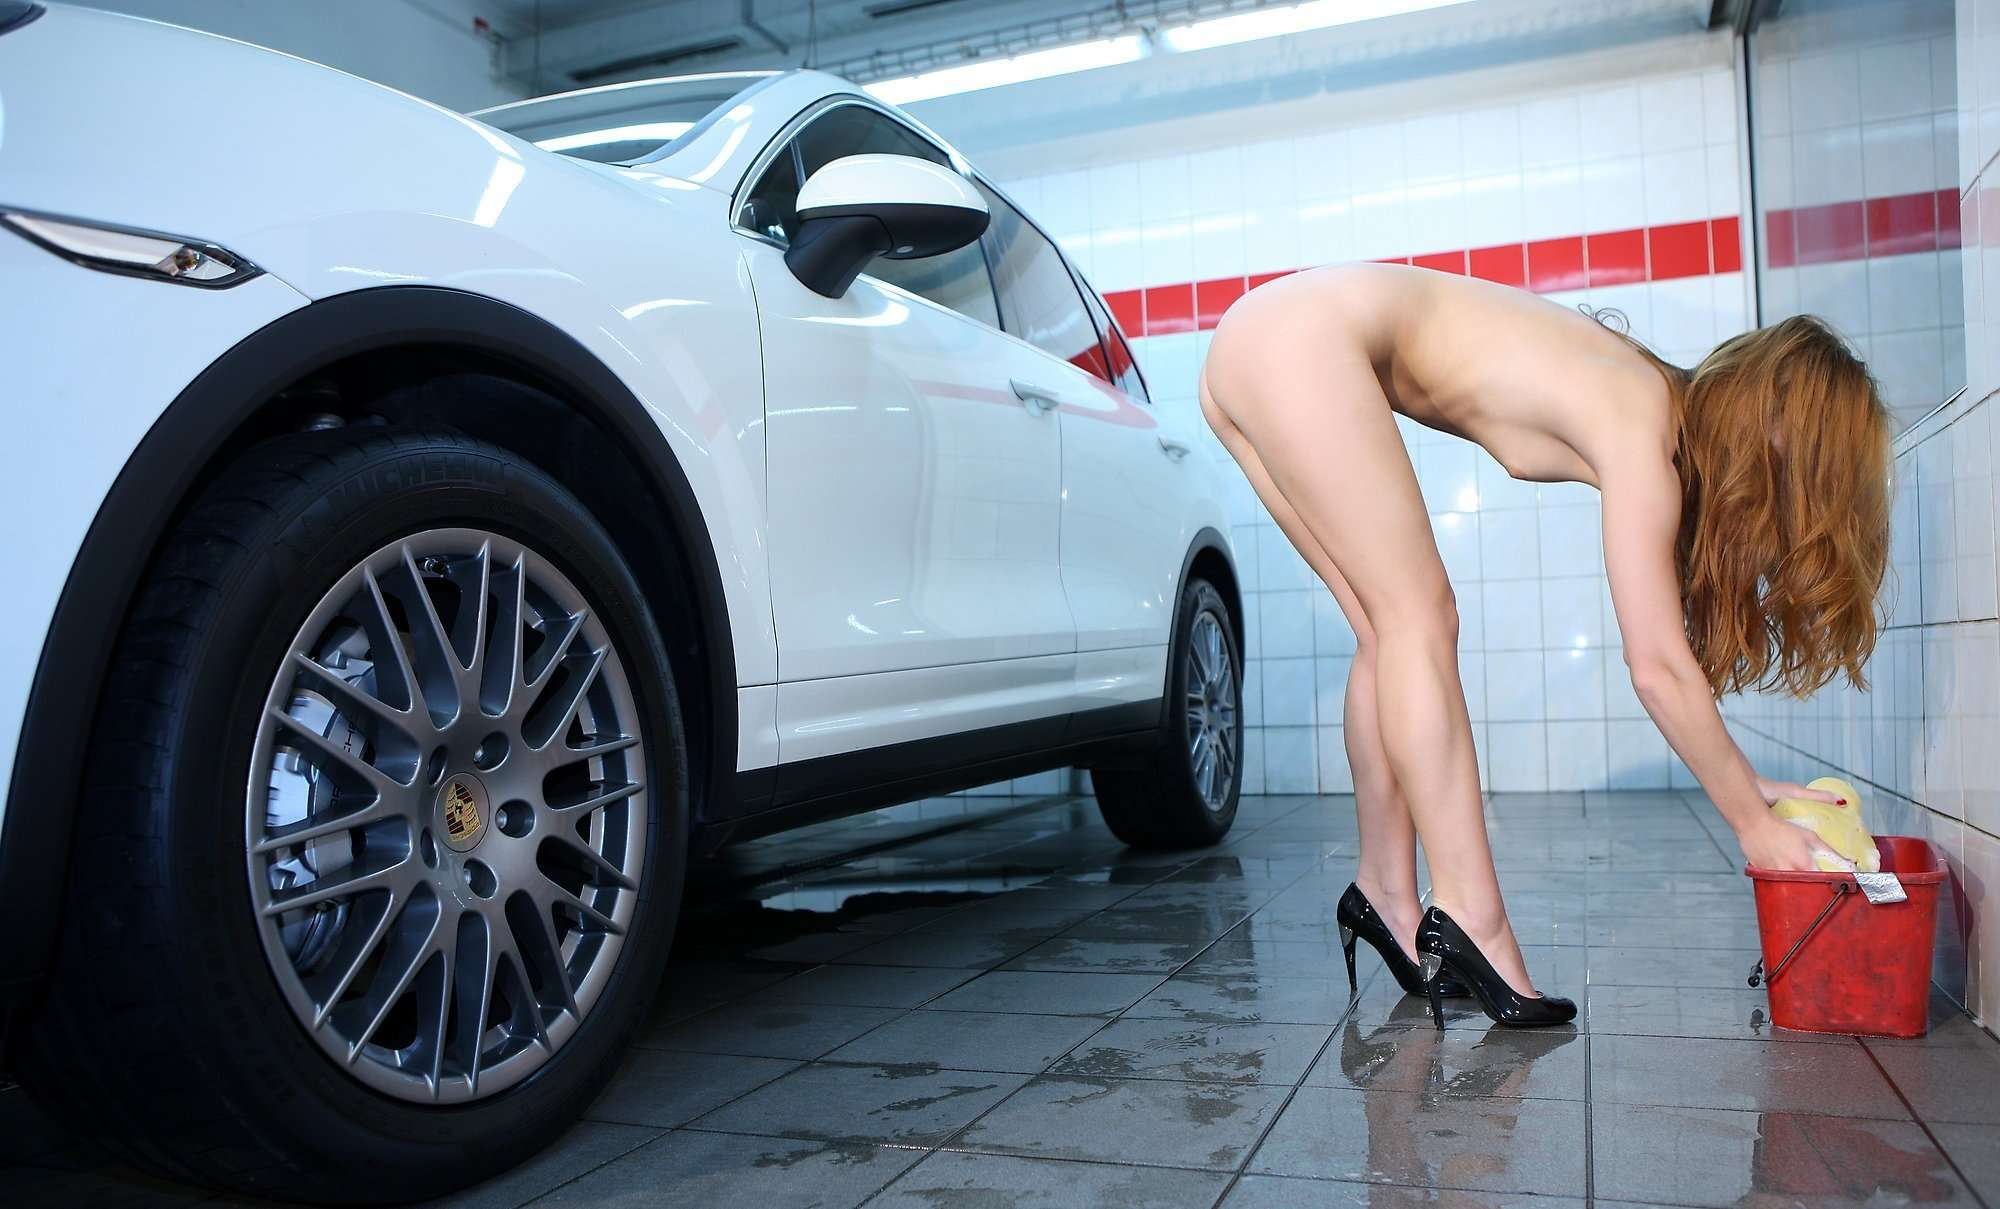 Naked girls washing cars — photo 14